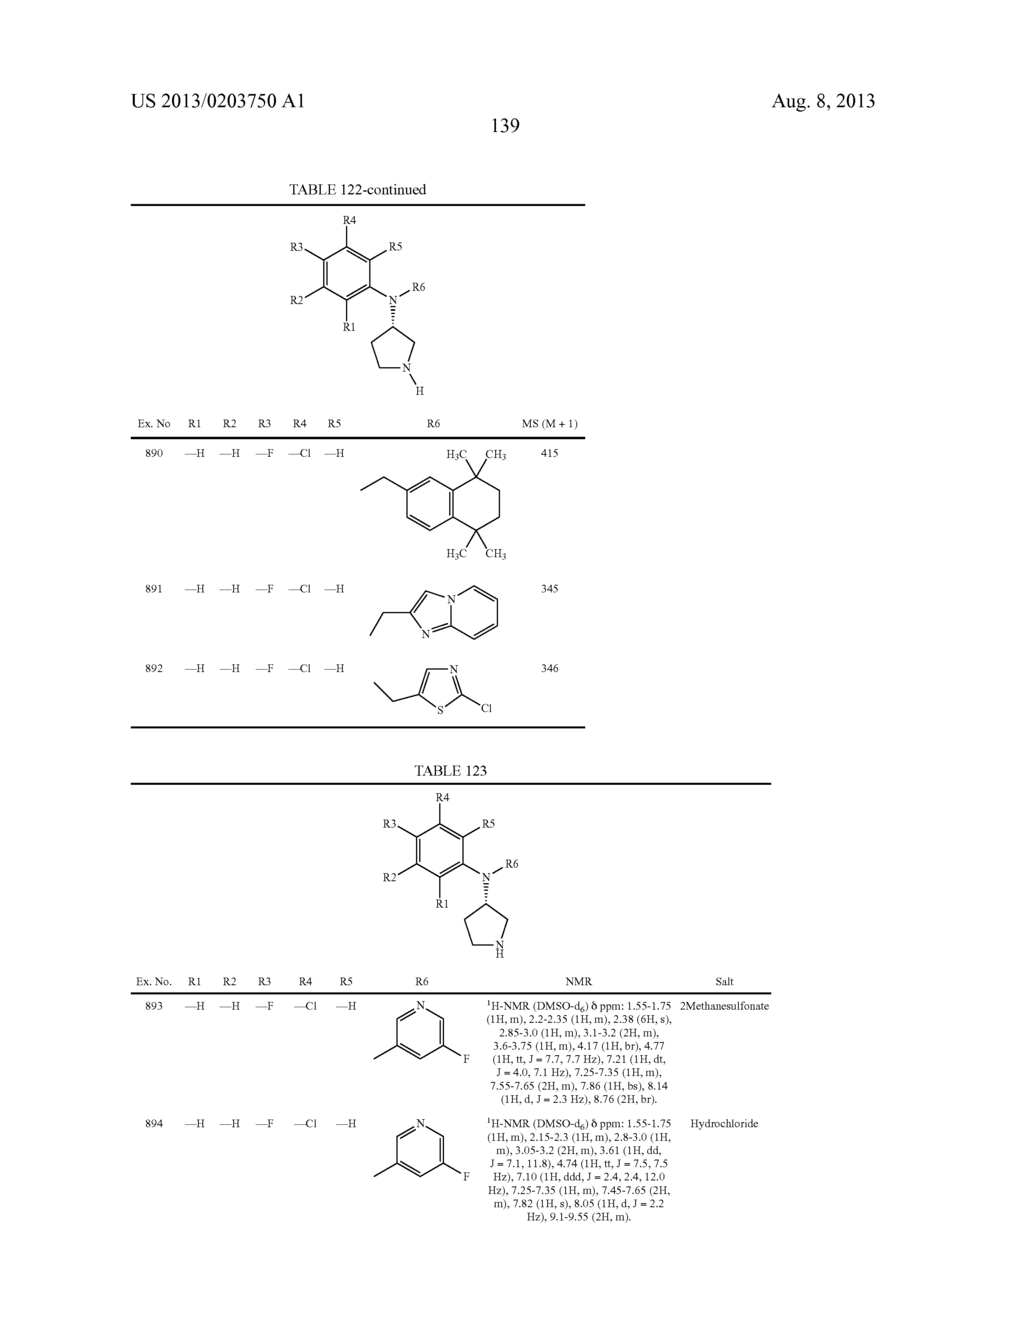 N,N-SUBSTITUTED 3-AMINOPYRROLIDINE COMPOUNDS USEFUL AS MONOAMINES REUPTAKE     INHIBITORS - diagram, schematic, and image 140